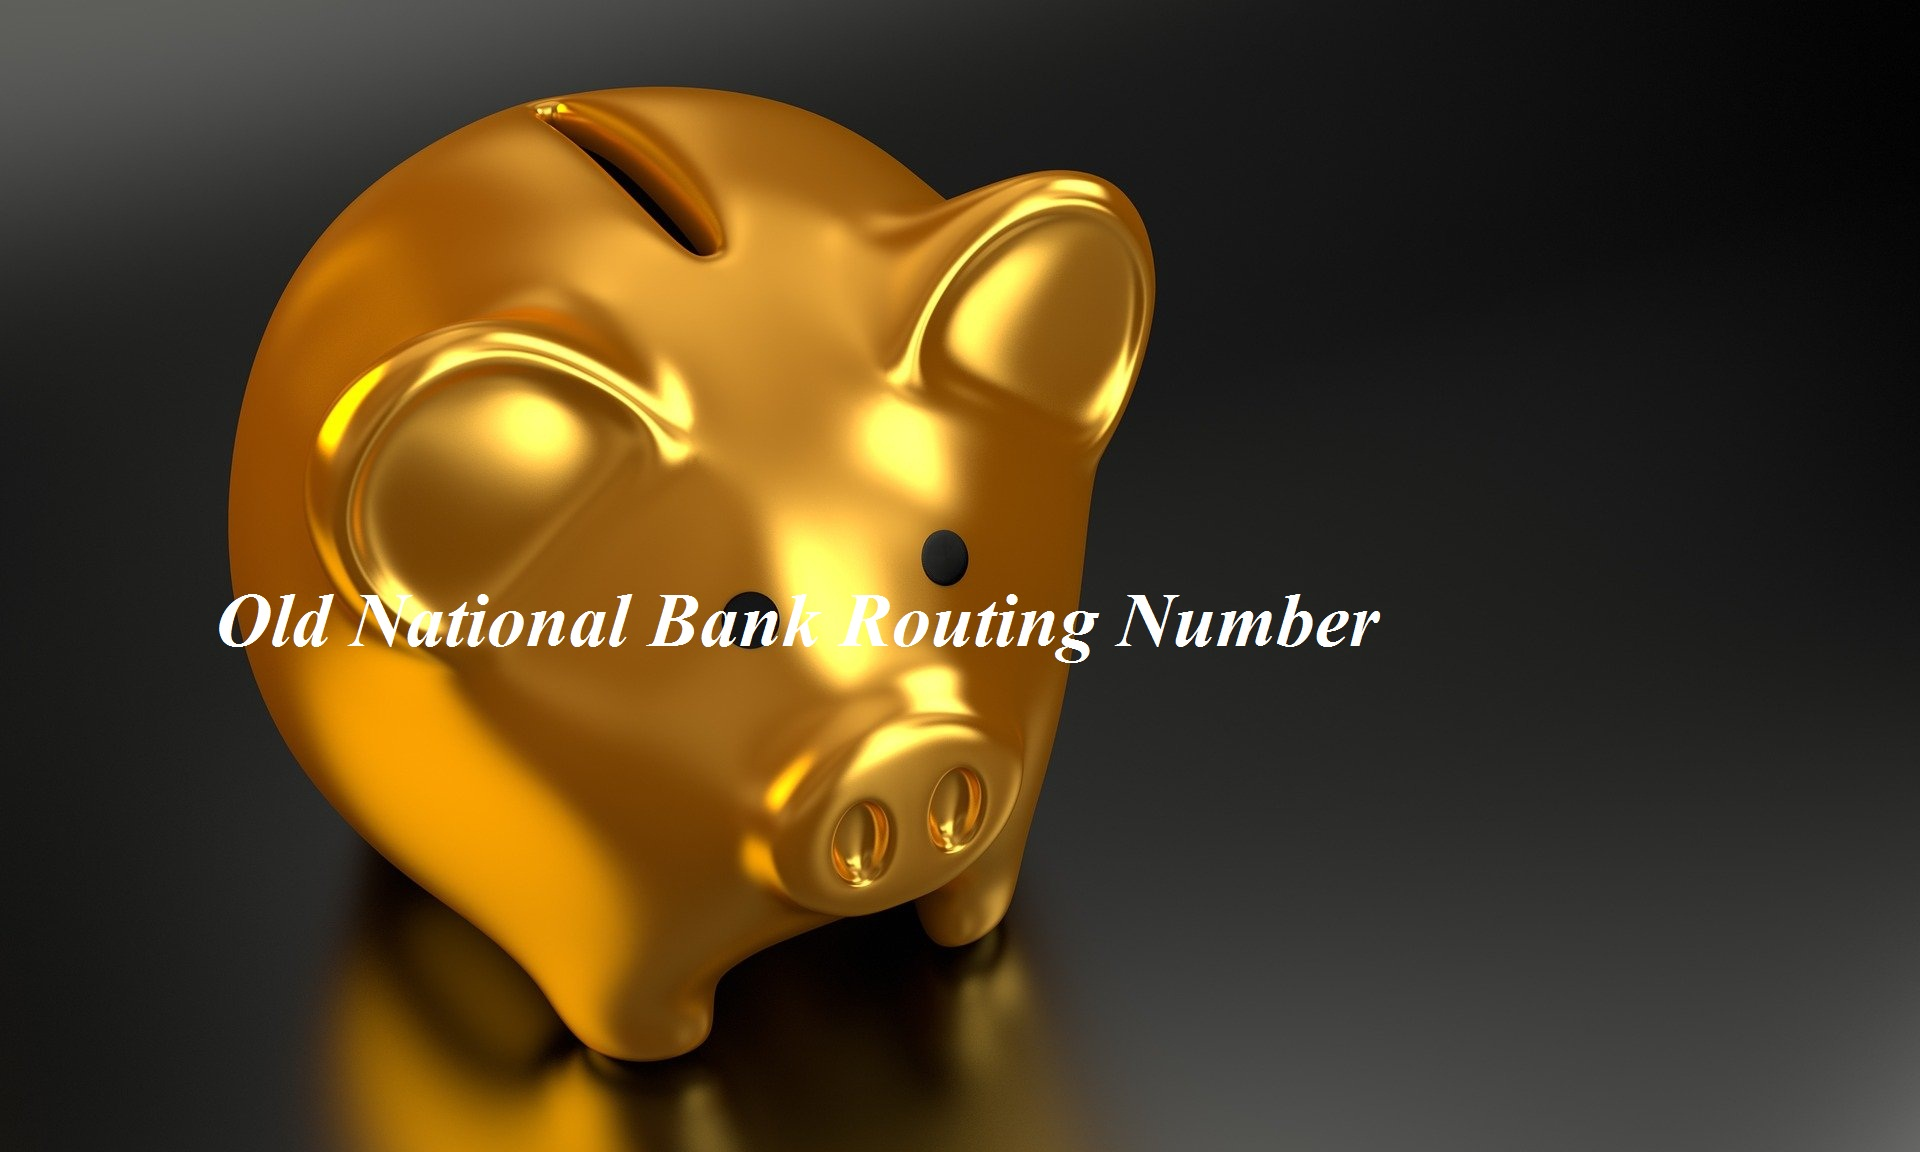 Old National Bank Routing Number